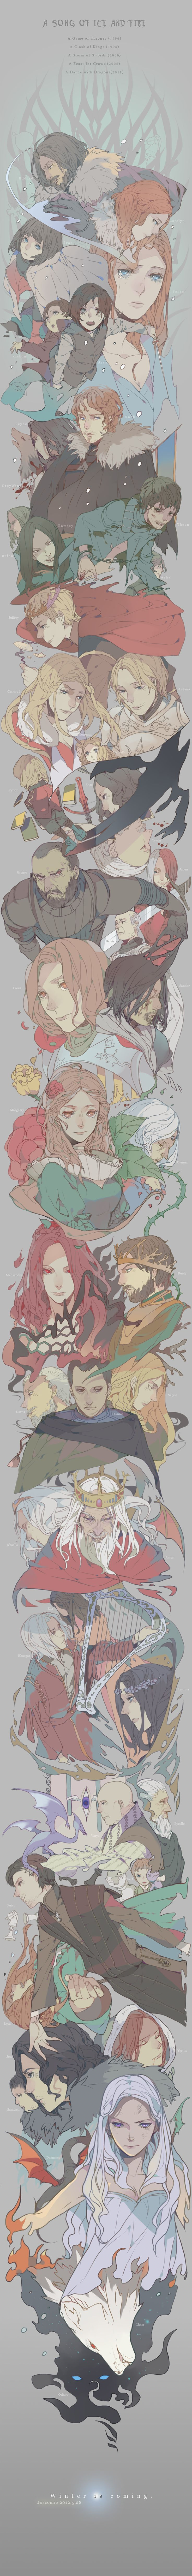 A Song of Ice and Fire by Joscomie http://www.pixiv.net/member.php?id=819246 #asoiaf